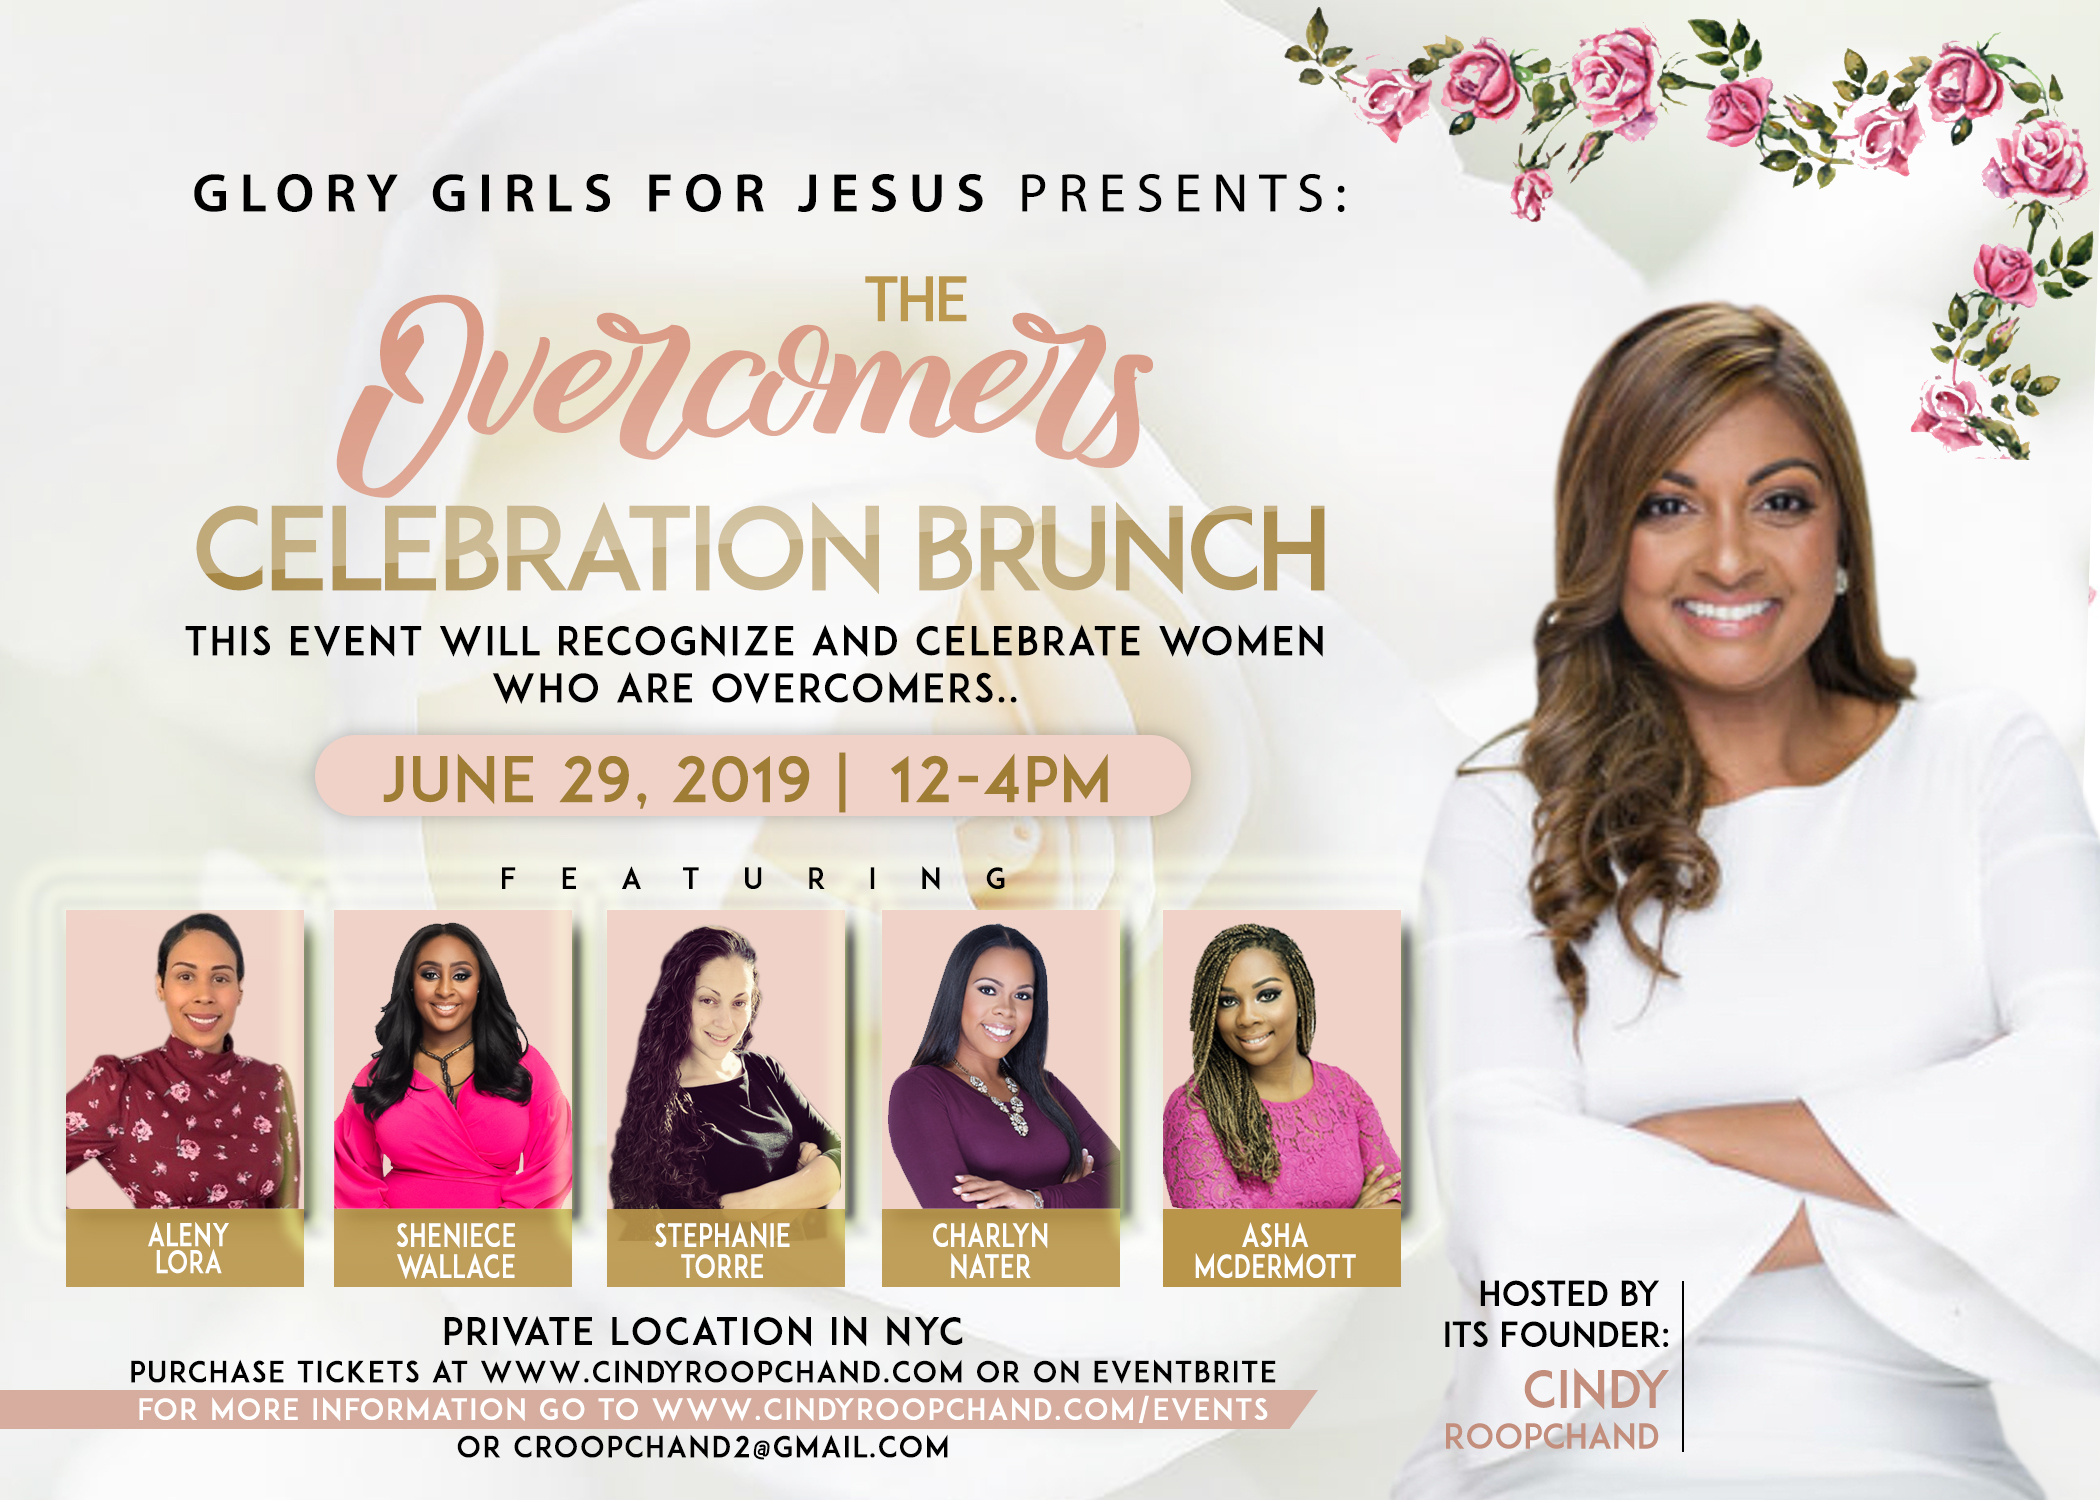 """Glory Girls For Jesus Invites You To Join Us For Our Overcomers Celebration Brunch.    About this Event   Glory Girls For Jesus is all about celebrating women who overcame unfortunate circumstances. In life, we will all encounter difficulties. However, I believe it is in those painful situations that our purpose is birthed. We don't just """"go through things we grow through them"""". We learn from these experiences and become stronger. If you are an overcomer, then you are a Glory Girl and we want to celebrate you! So, come out and celebrate with us!  This event will bring together a panel of powerful women who will share their personal stories of hurt, pain and perseverance to show others they are not alone. We will honor cancer survivors, domestic violence survivors, sexual assault survivors, miscarriage survivors, and single moms etc. This event will provide tips, resources, and strategies to help women become overcomers. Women will connect, network and create a support group. They will discover how to transform their pain into purpose. It will be an afternoon filled with food, love, and laughter. So, invite a friend and join us for this memorable celebration.  The event will feature the Founder of Glory Girls For Jesus Cindy Roopchand. She will be releasing her new book The Keys To Overcoming at the event. She will provide key tips on how to become an overcomer.  Special Guest Speakers:  Aleny Lora The Founder of A Touch From Jehovah Rapha  Shenice Wallace The Founder of ChosenFaces Nonprofit  Stephanie Torre The Youth Leader of Bethel  Charlyn Nater The Founder of House of GEMS Nonprofit  Asha McDermott The Founder of Jesus Life Company Nonprofit  Ticket Includes:  - Entrance to the event at Michael's Waterfront Dining Restaurant  -Brunch Meal : Scrambled Eggs/ Western Omelets/ Home Fries/French Toast/Fresh Fruit Salad/Bagels Cream Cheese and Jelly/ Sausage/Bacon/Virginia Ham/Coffee, Tea, Orange Juice, Apple Juice and Dessert  -Opportunities to Network, Connect, and"""